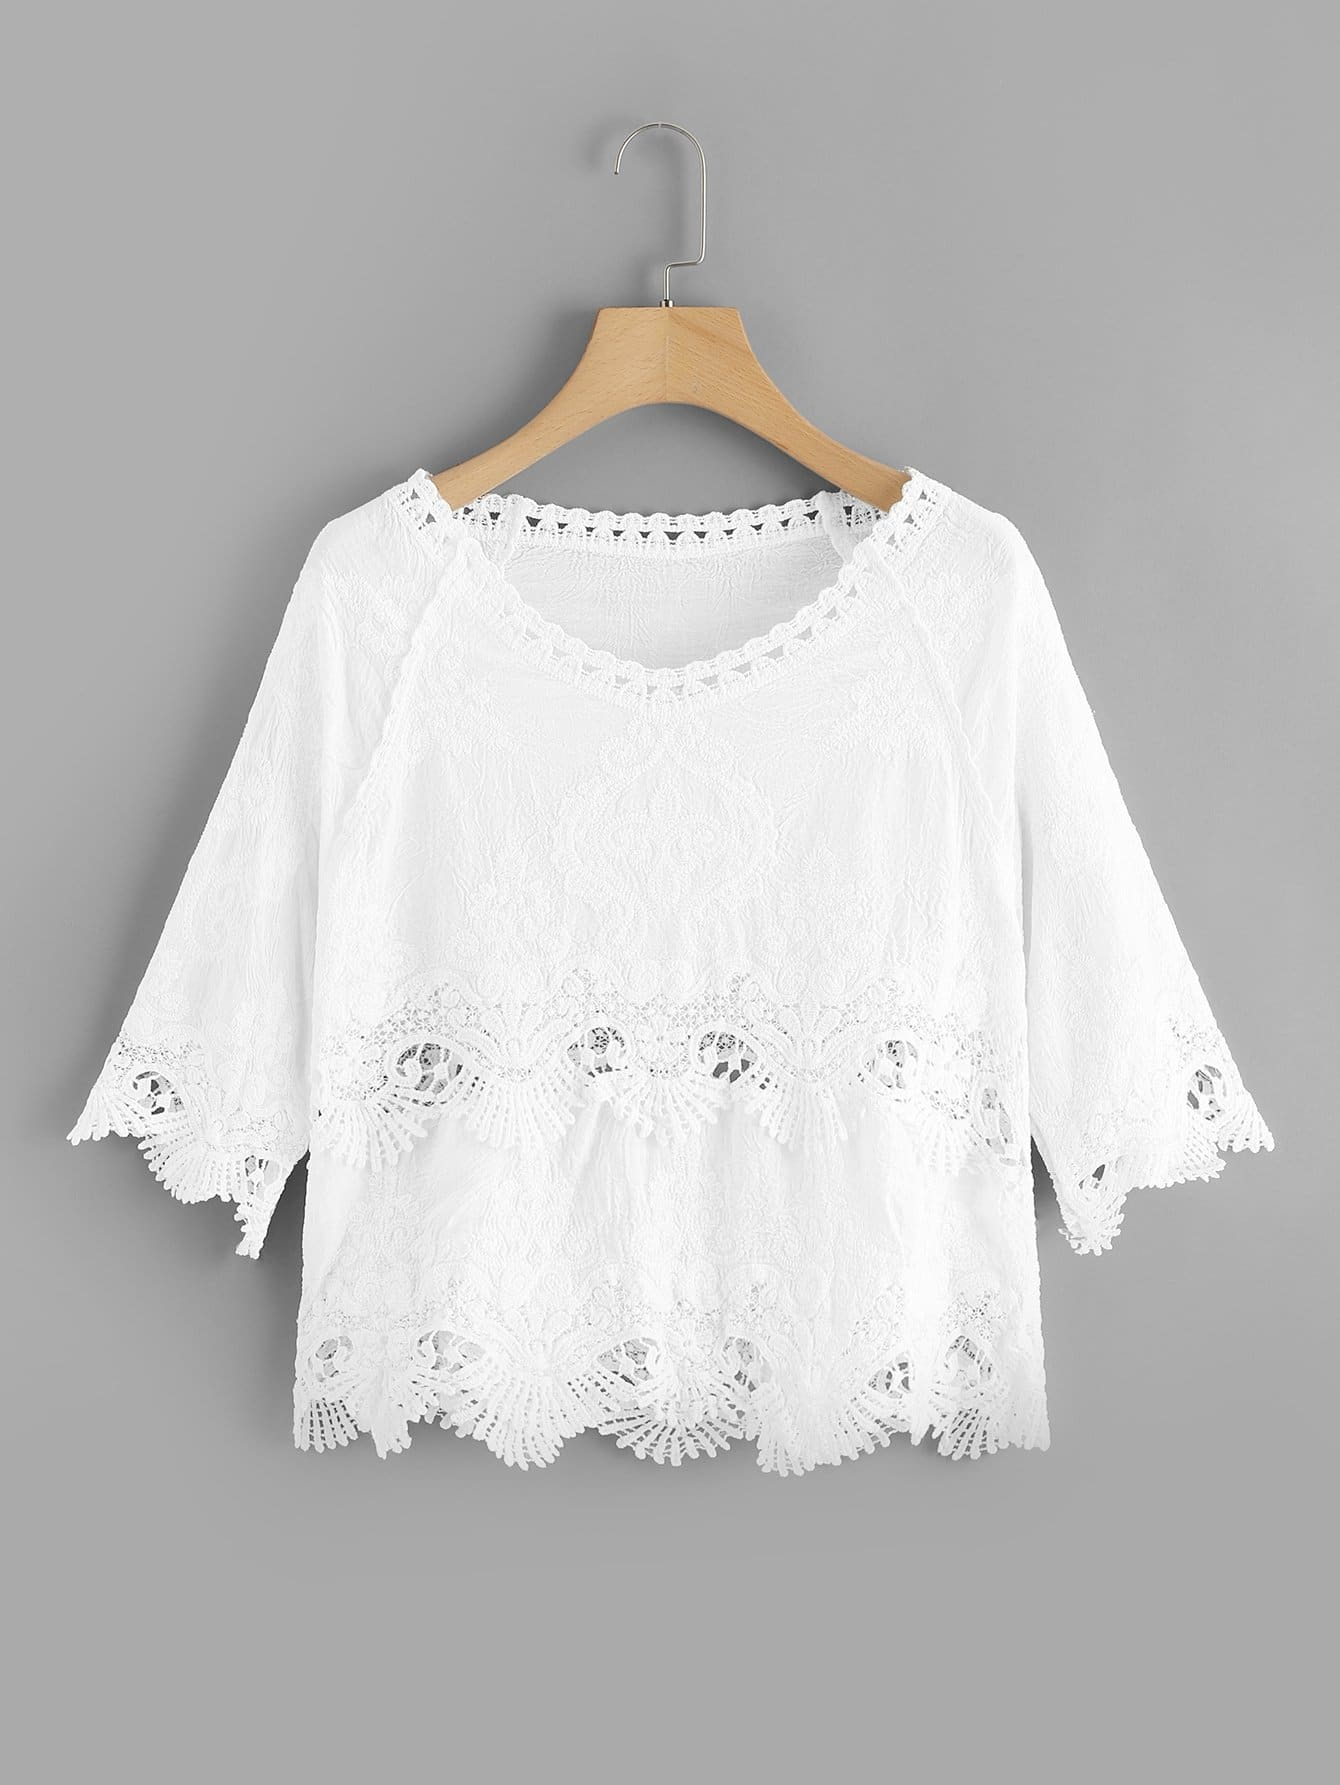 Hollow Out Crochet Panel Top hollow out crochet panel blouse